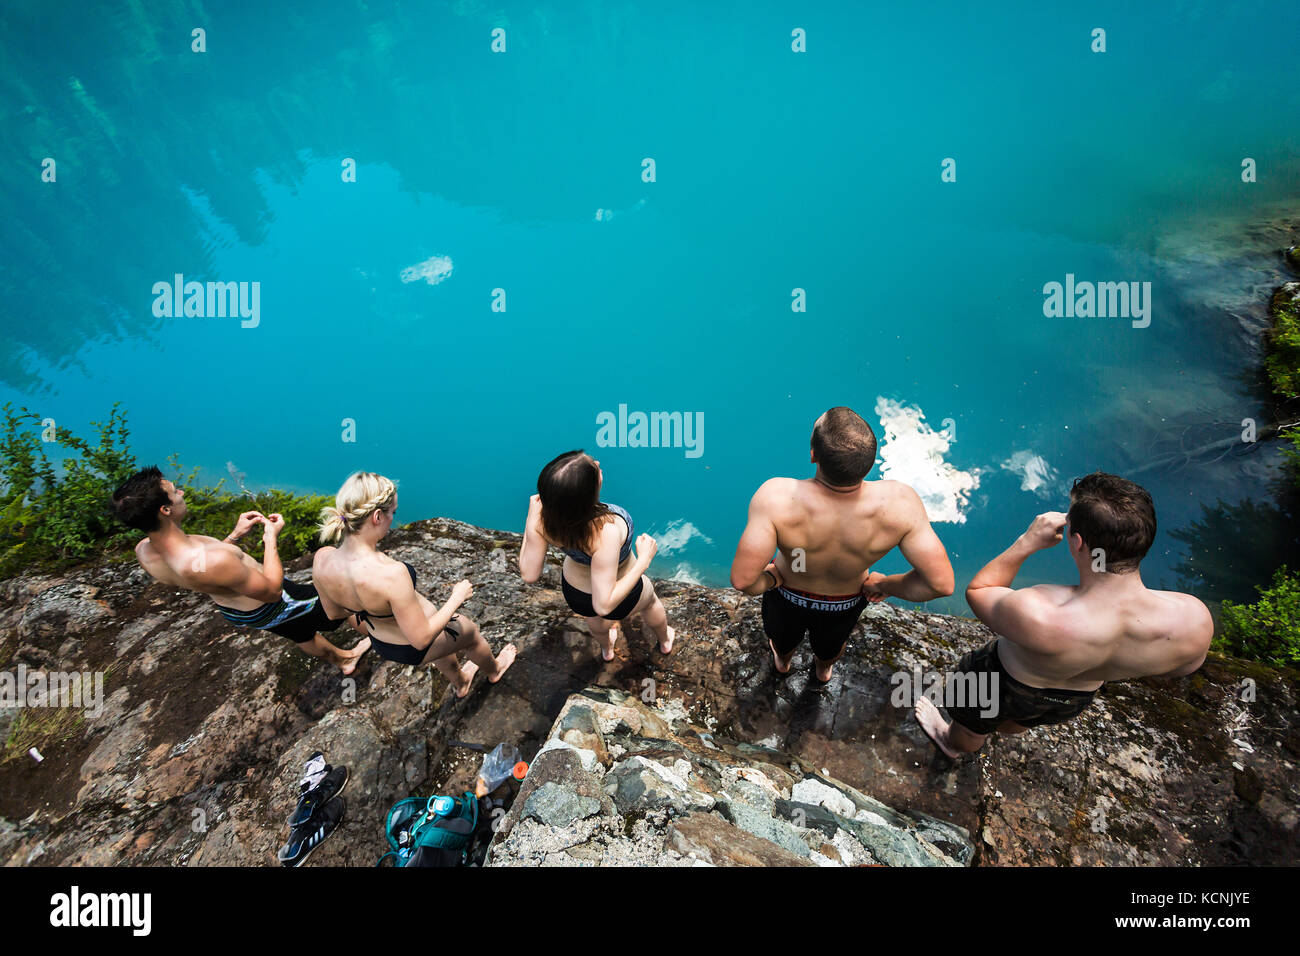 Friends prepare to dip into the tourquise waters of Century Sam lake in Strathcona Park.  Vancouver Island, British - Stock Image